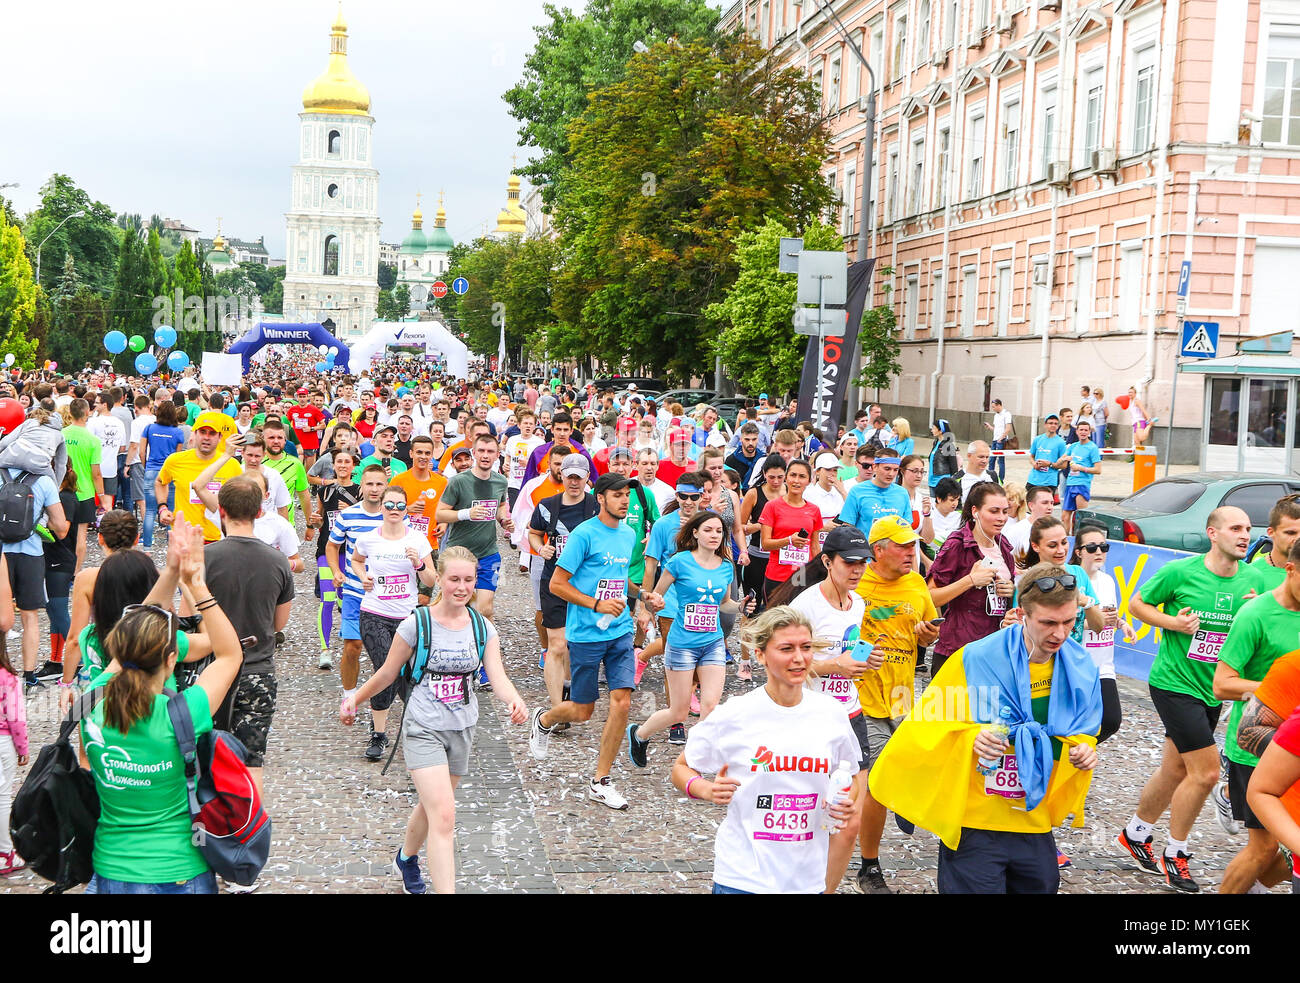 Kyiv Ukraine June 3 2018 Athletes And Amateurs Run On The Streets During The 26th Kyiv Chestnut Charity Run 2018